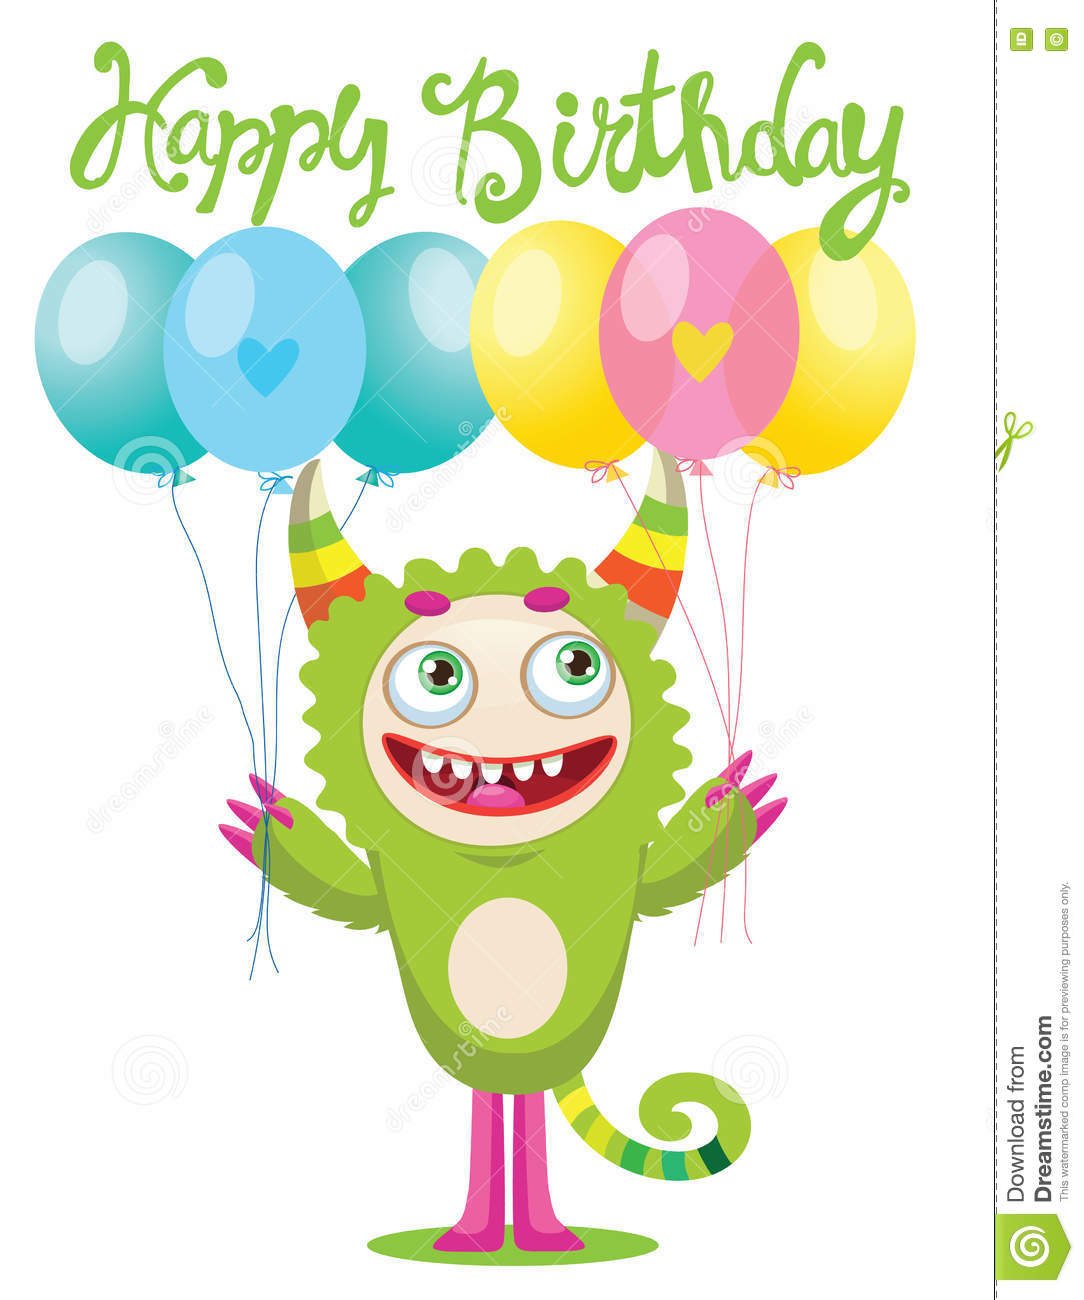 Cartoon Cute Monster Vector Illustration Funny Birthday Greeting Card